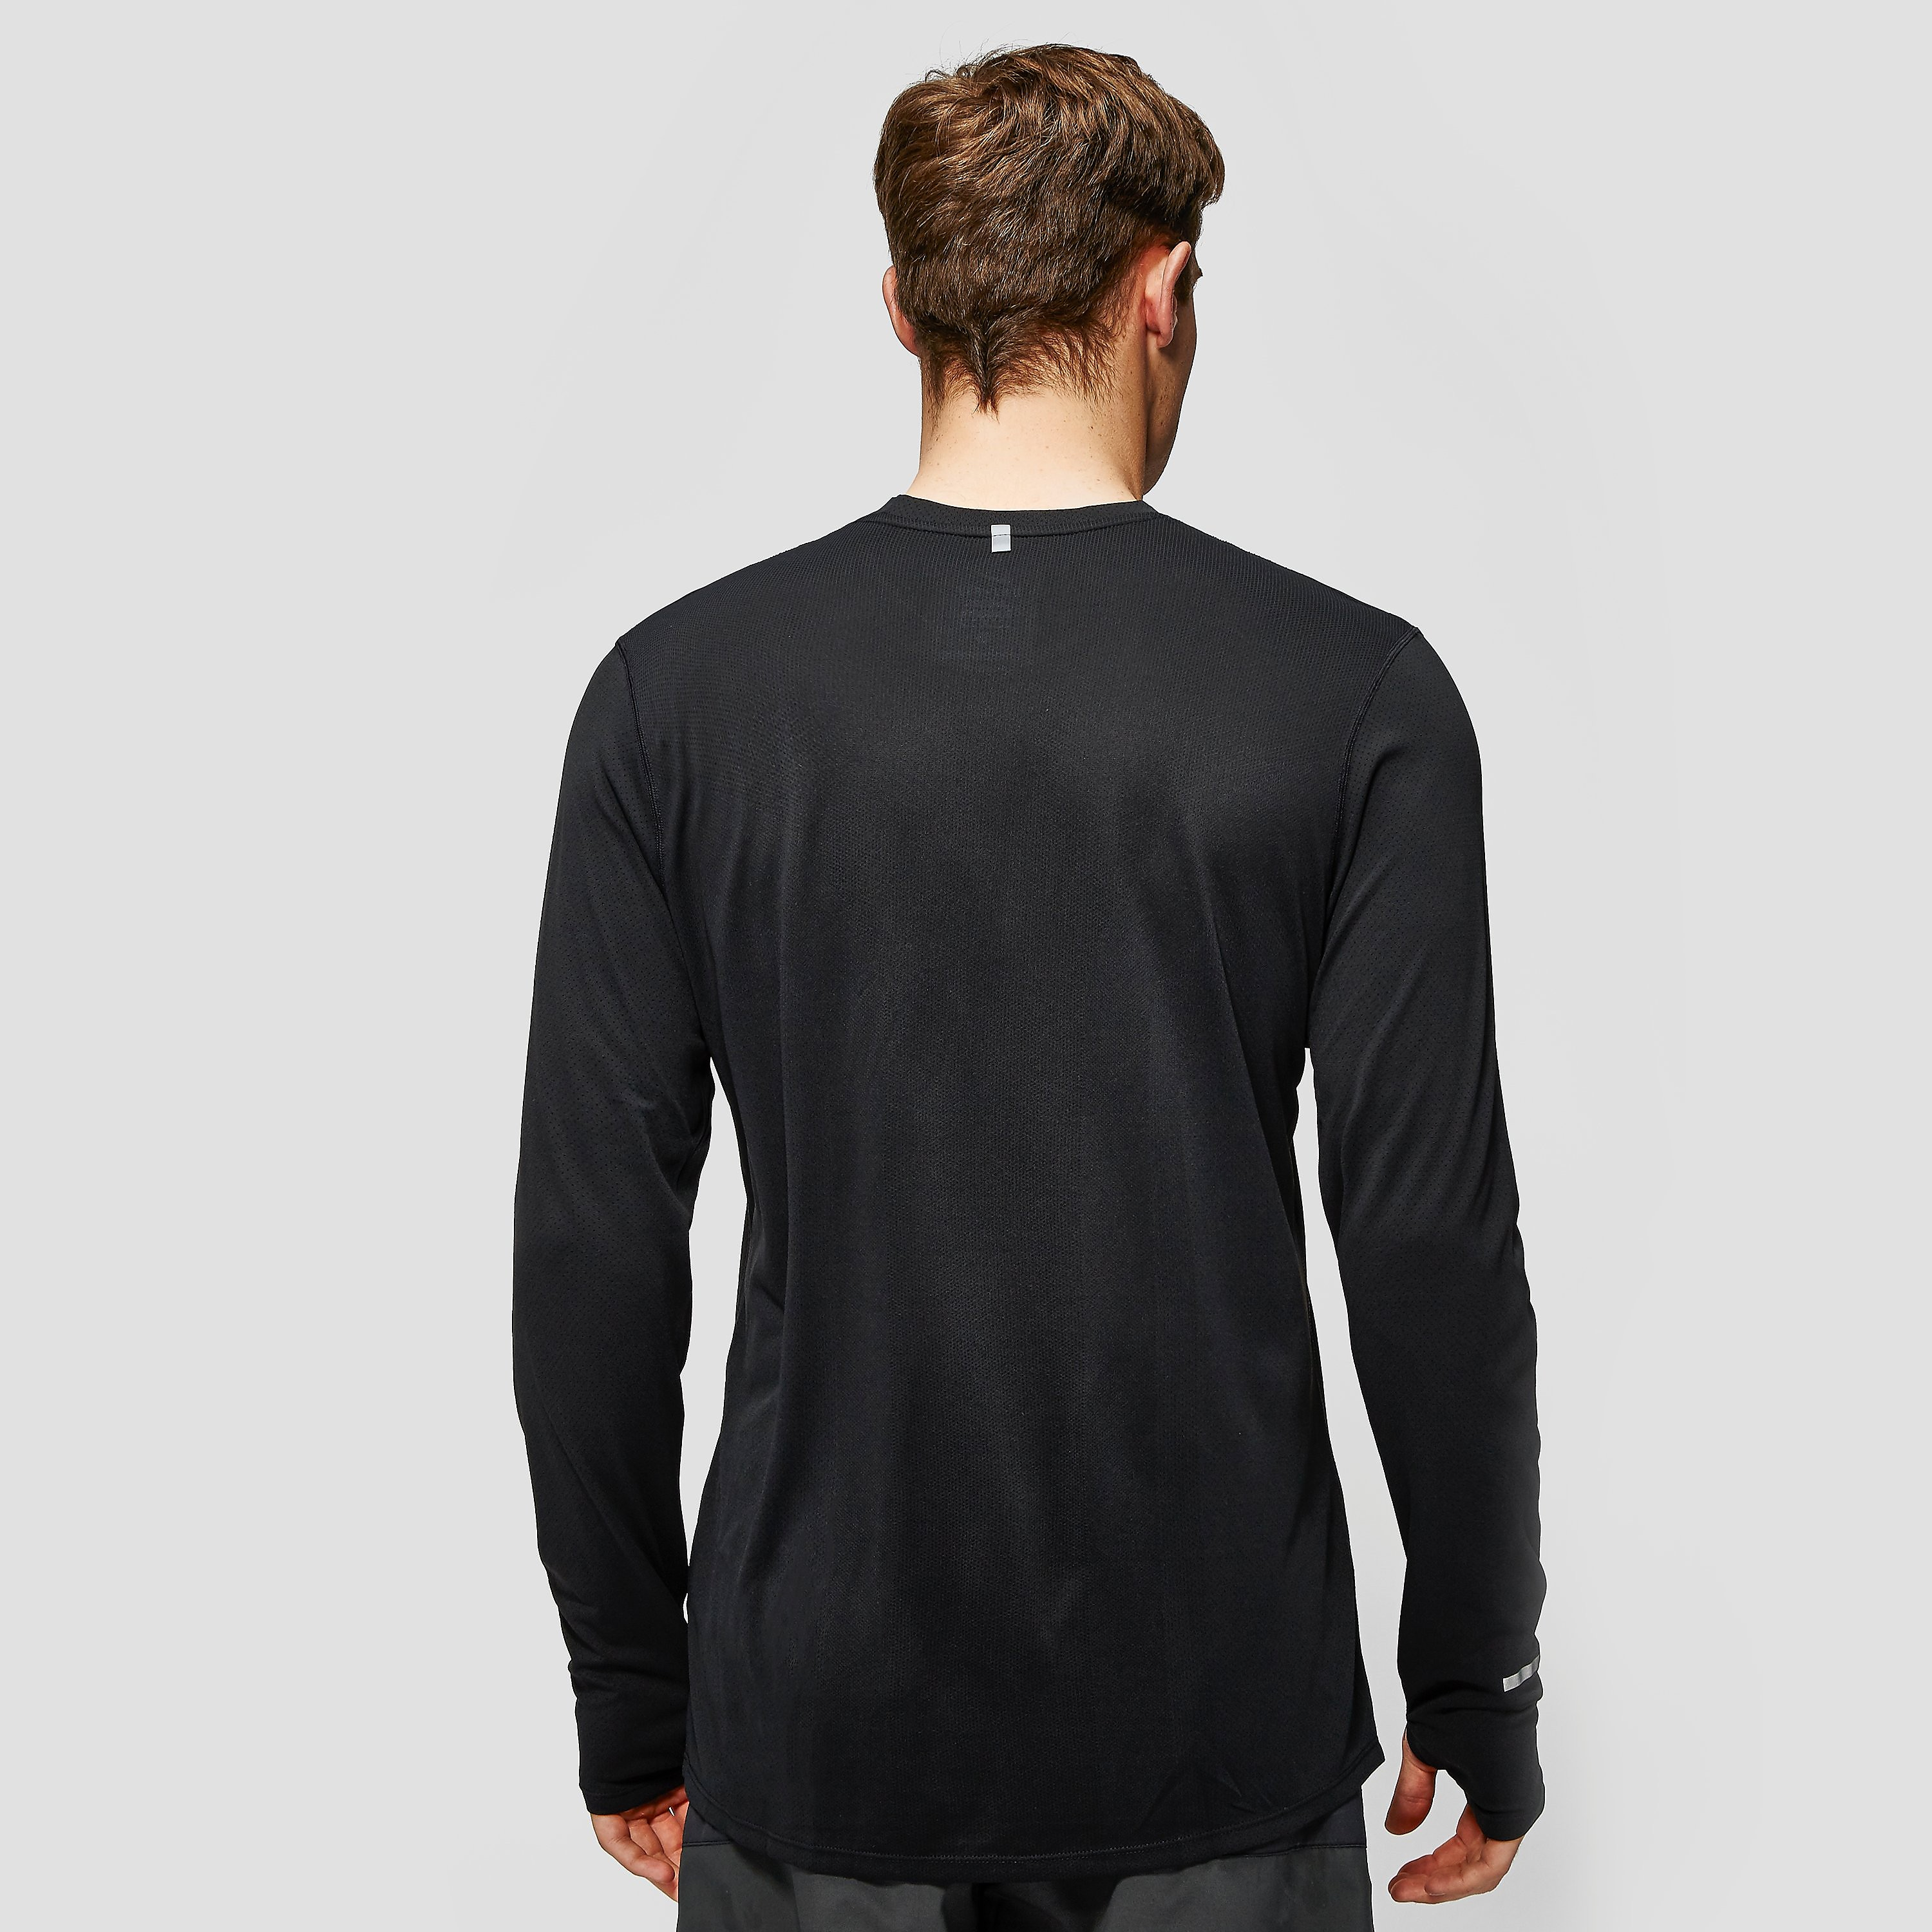 Nike Dri-FIT Contour Men's Running Long-Sleeve Shirt